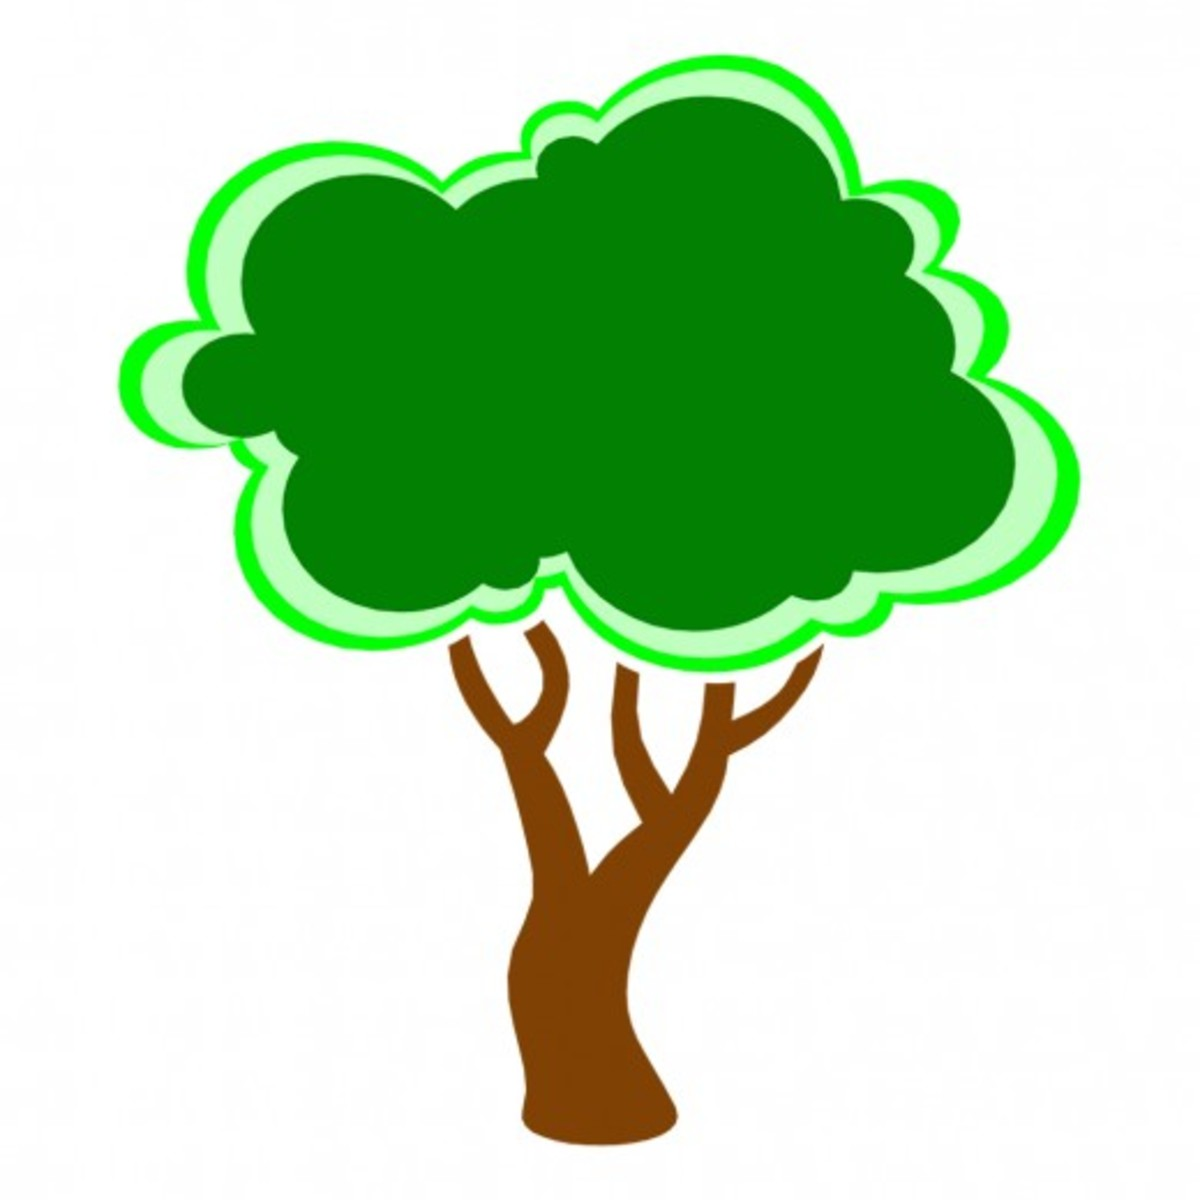 Tree Outlined in Neon Green